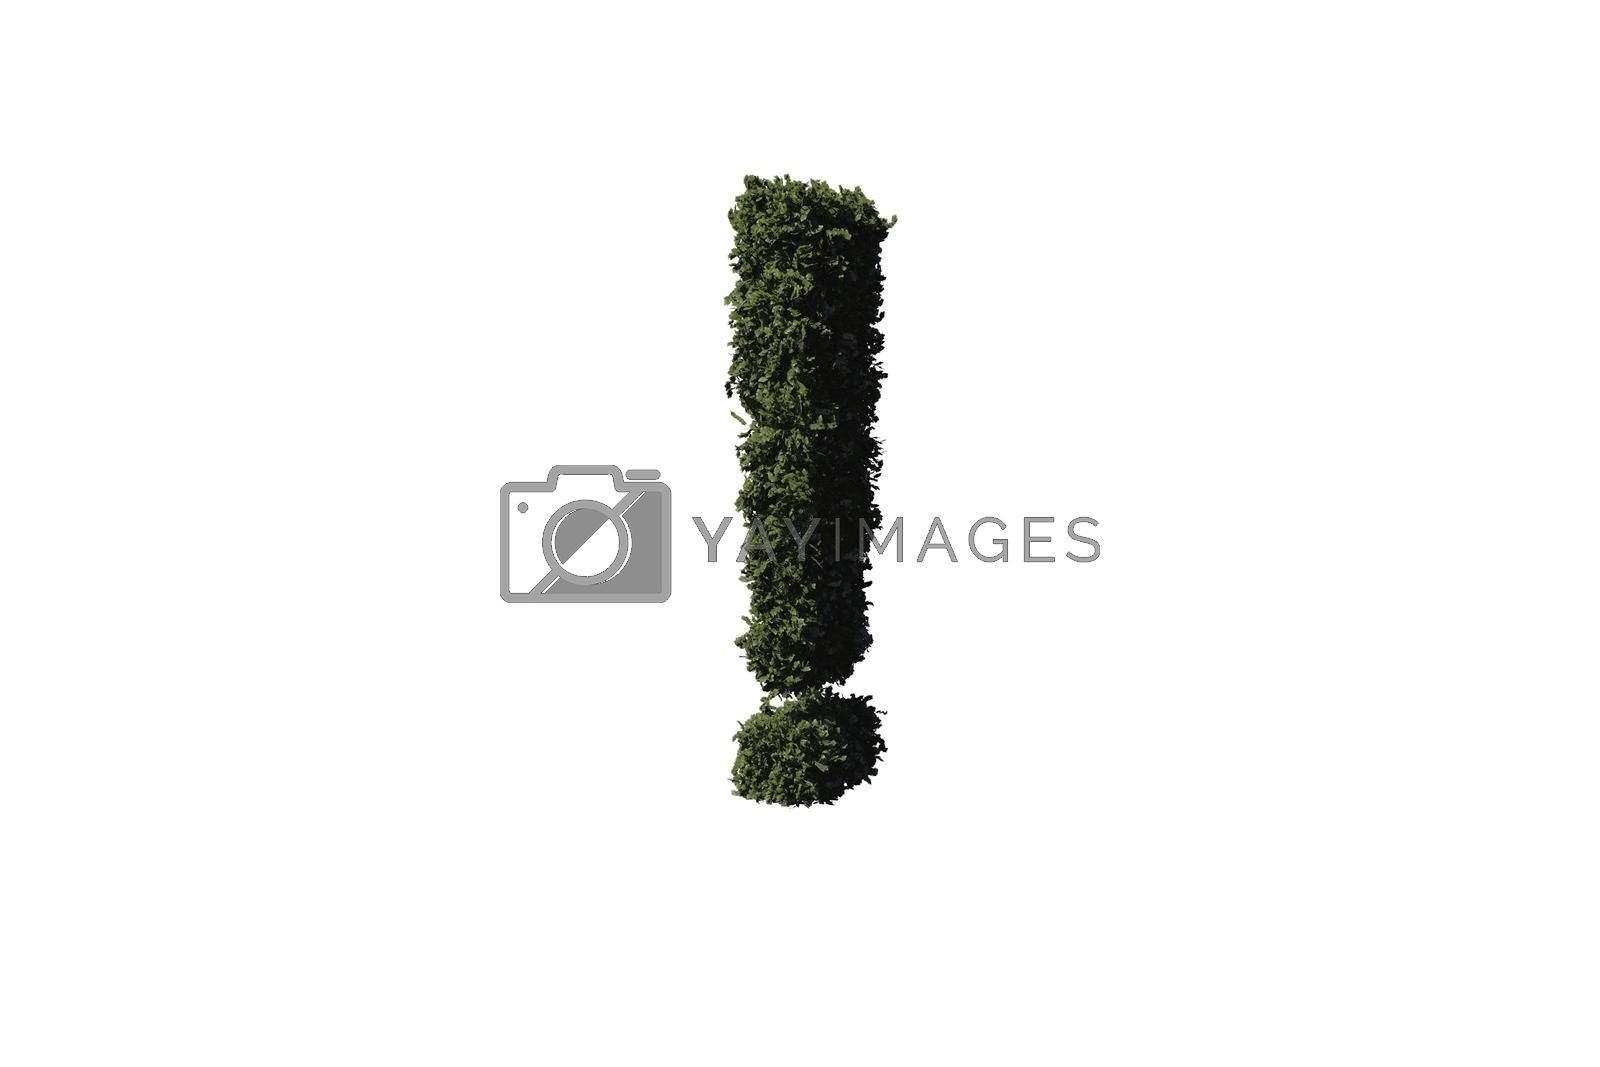 Royalty free image of Exclamation mark made of leaves by Wavebreakmedia